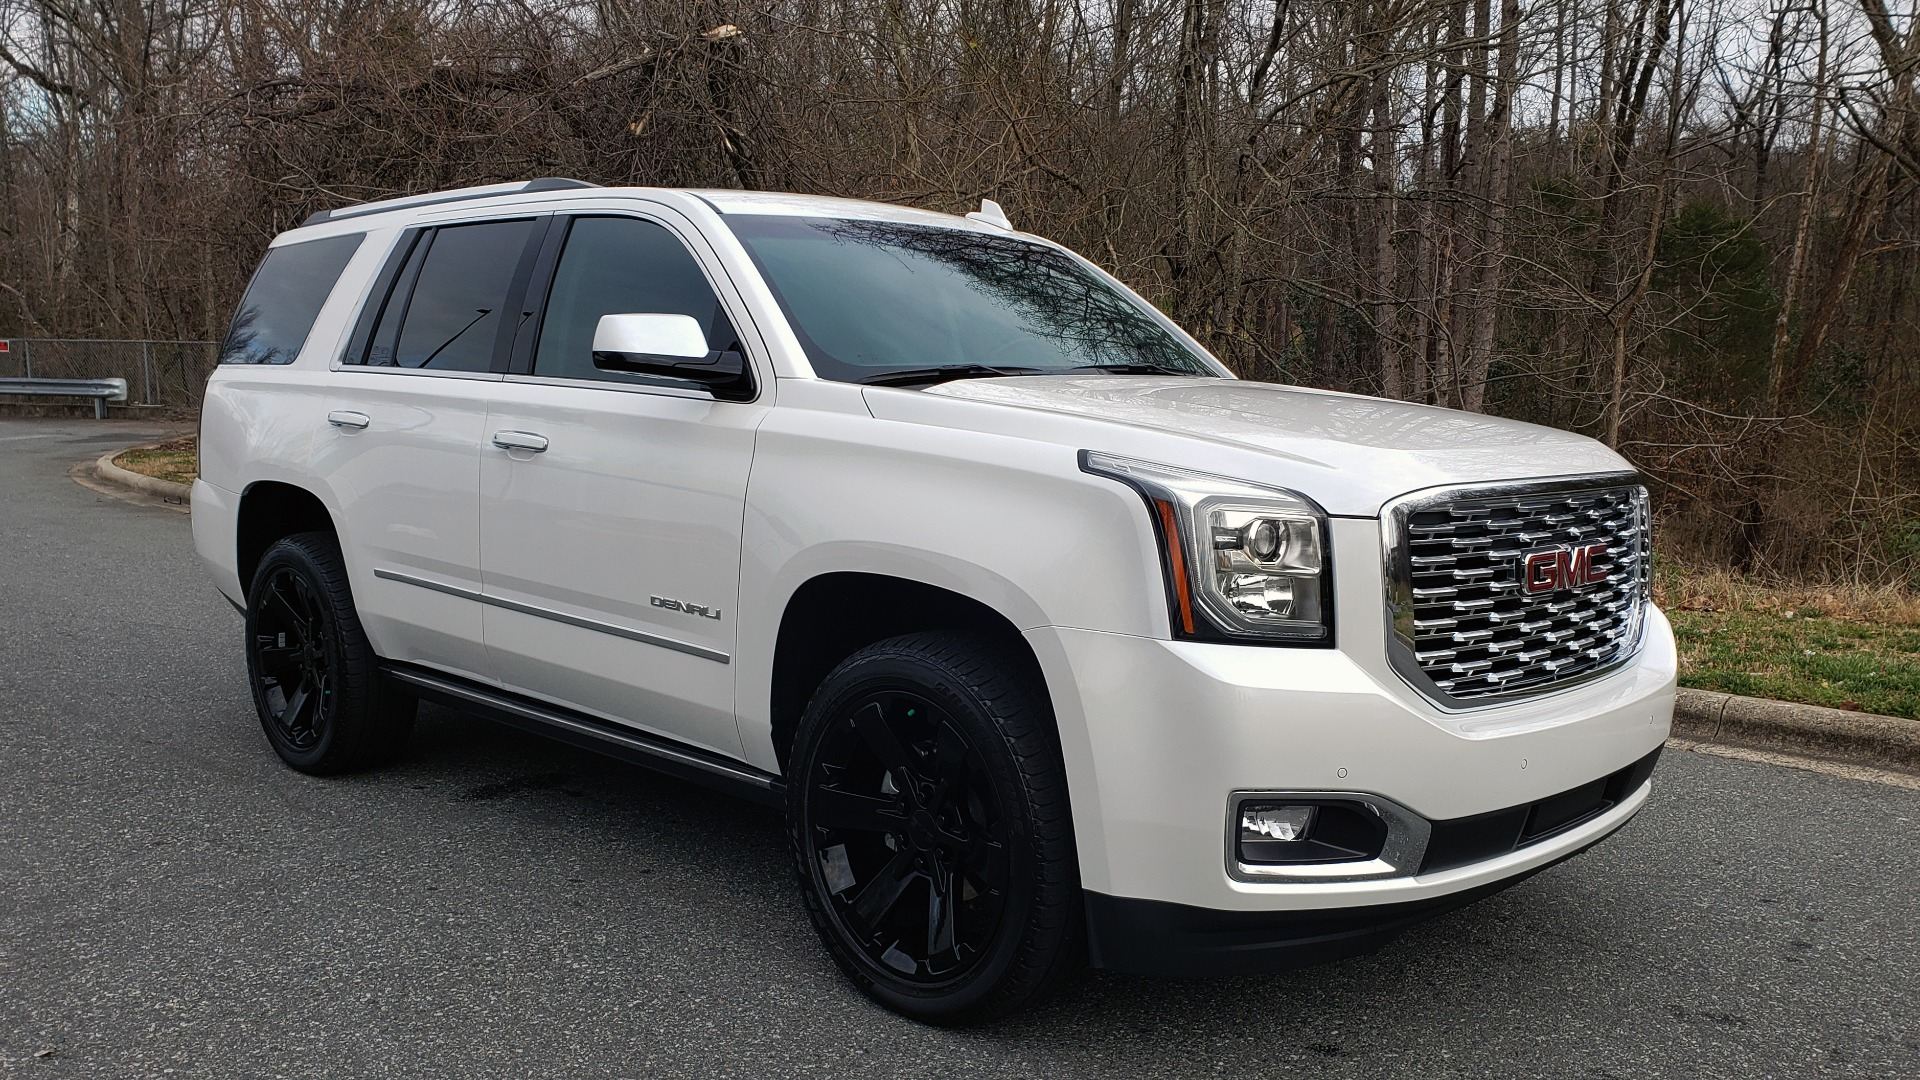 Used 2018 GMC YUKON DENALI 4WD / NAV / SUNROOF / BOSE / 3-ROW / REARVIEW for sale Sold at Formula Imports in Charlotte NC 28227 4